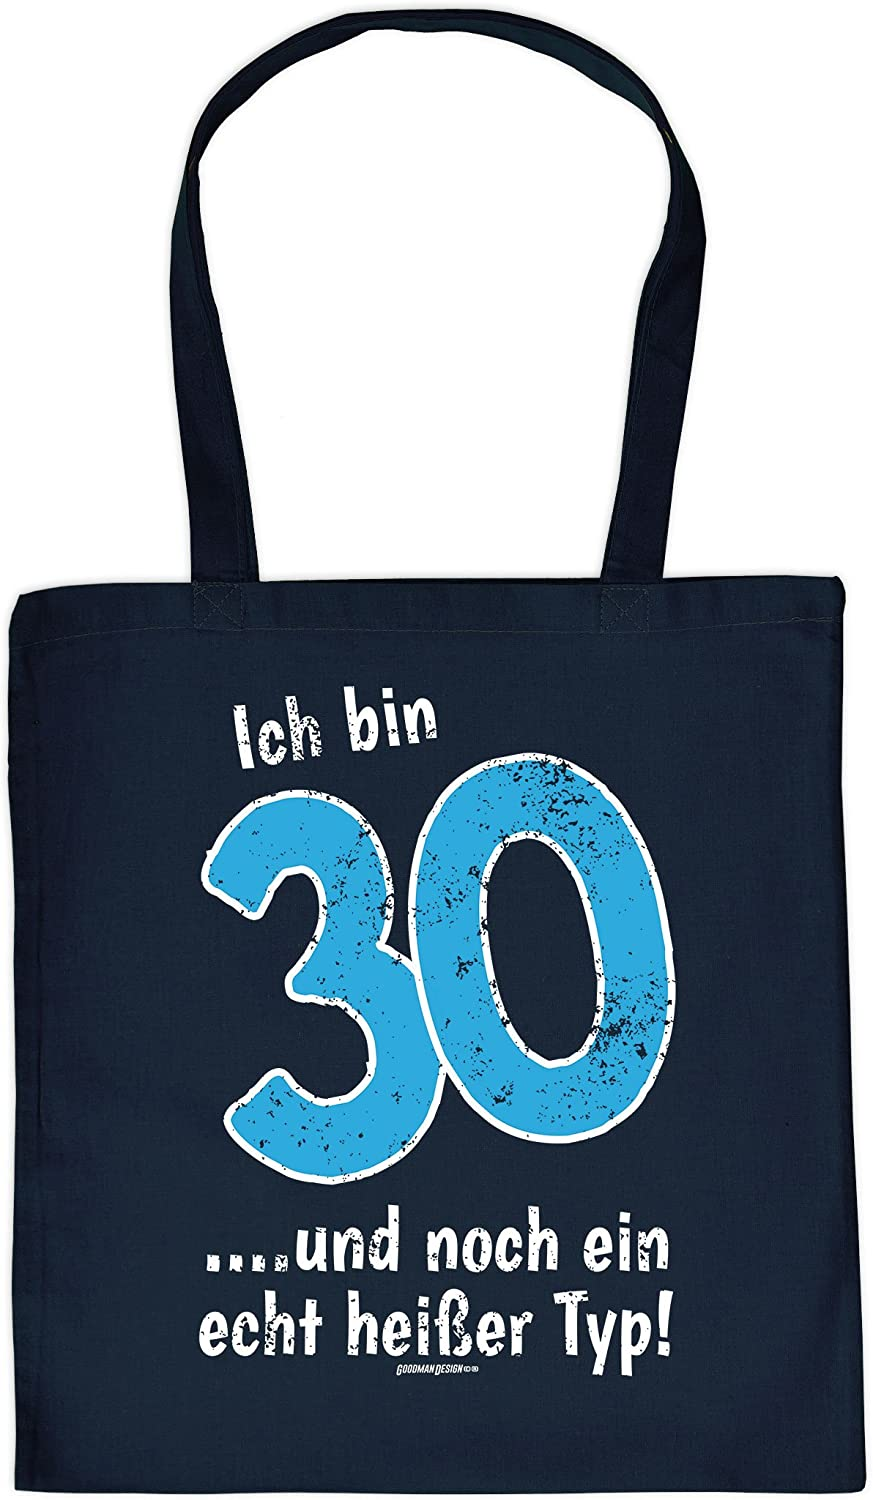 30th Birthday Gift Cool Bag 30 Years I Am I M 30 Printed Cotton Bag Colour Navy Blue Amazon Co Uk Luggage